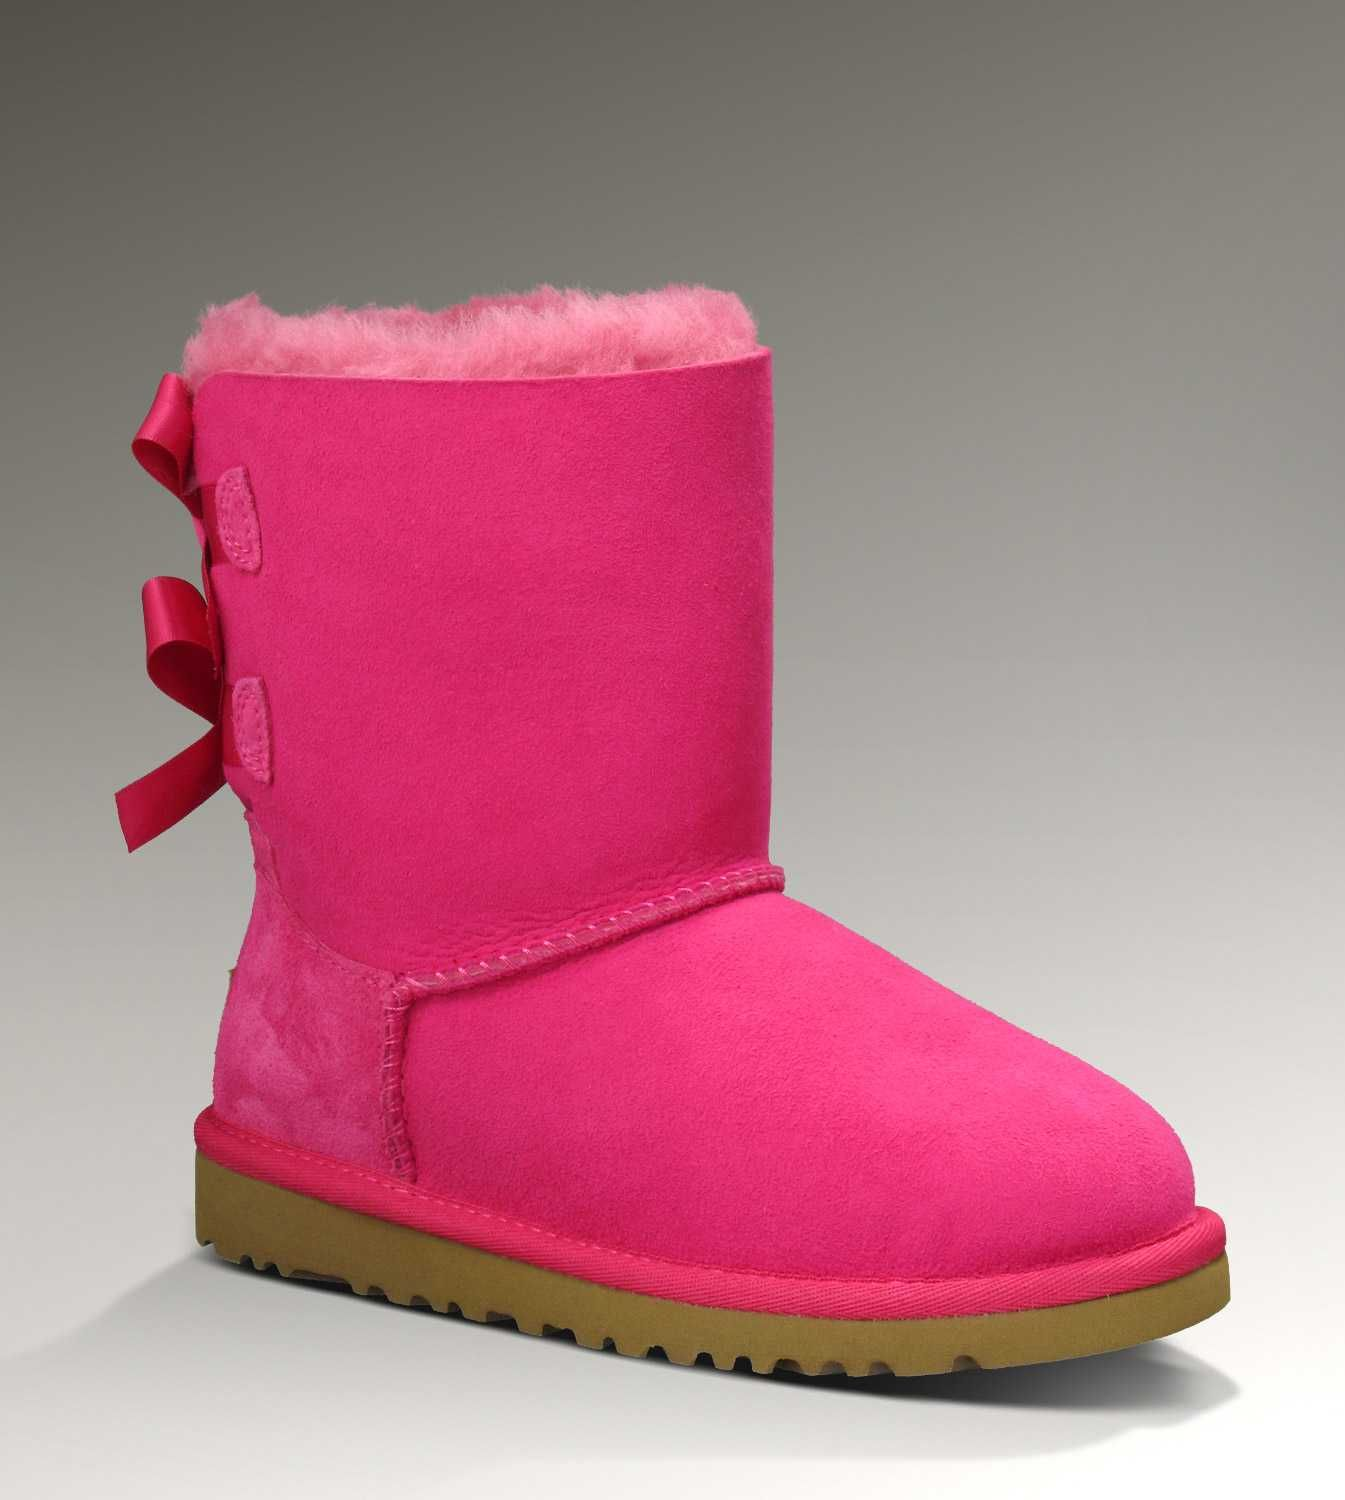 dbacf16f5a0 Cheap Uggs Bailey Bow 1002954 Boots For Women [UGG UK 019] - $140.00 ...